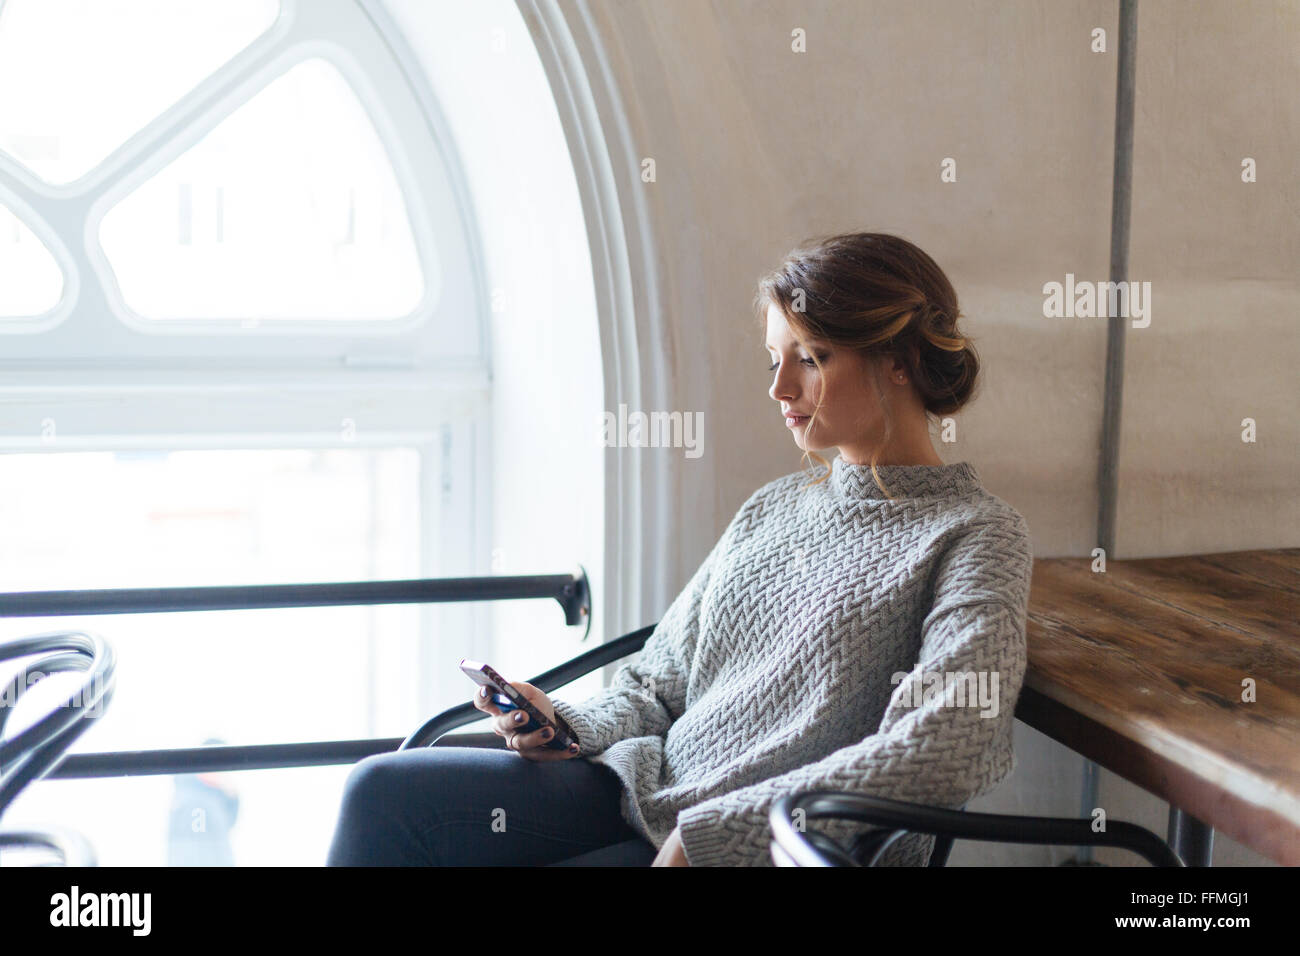 Young beautiful woman using smartphone in cafe - Stock Image